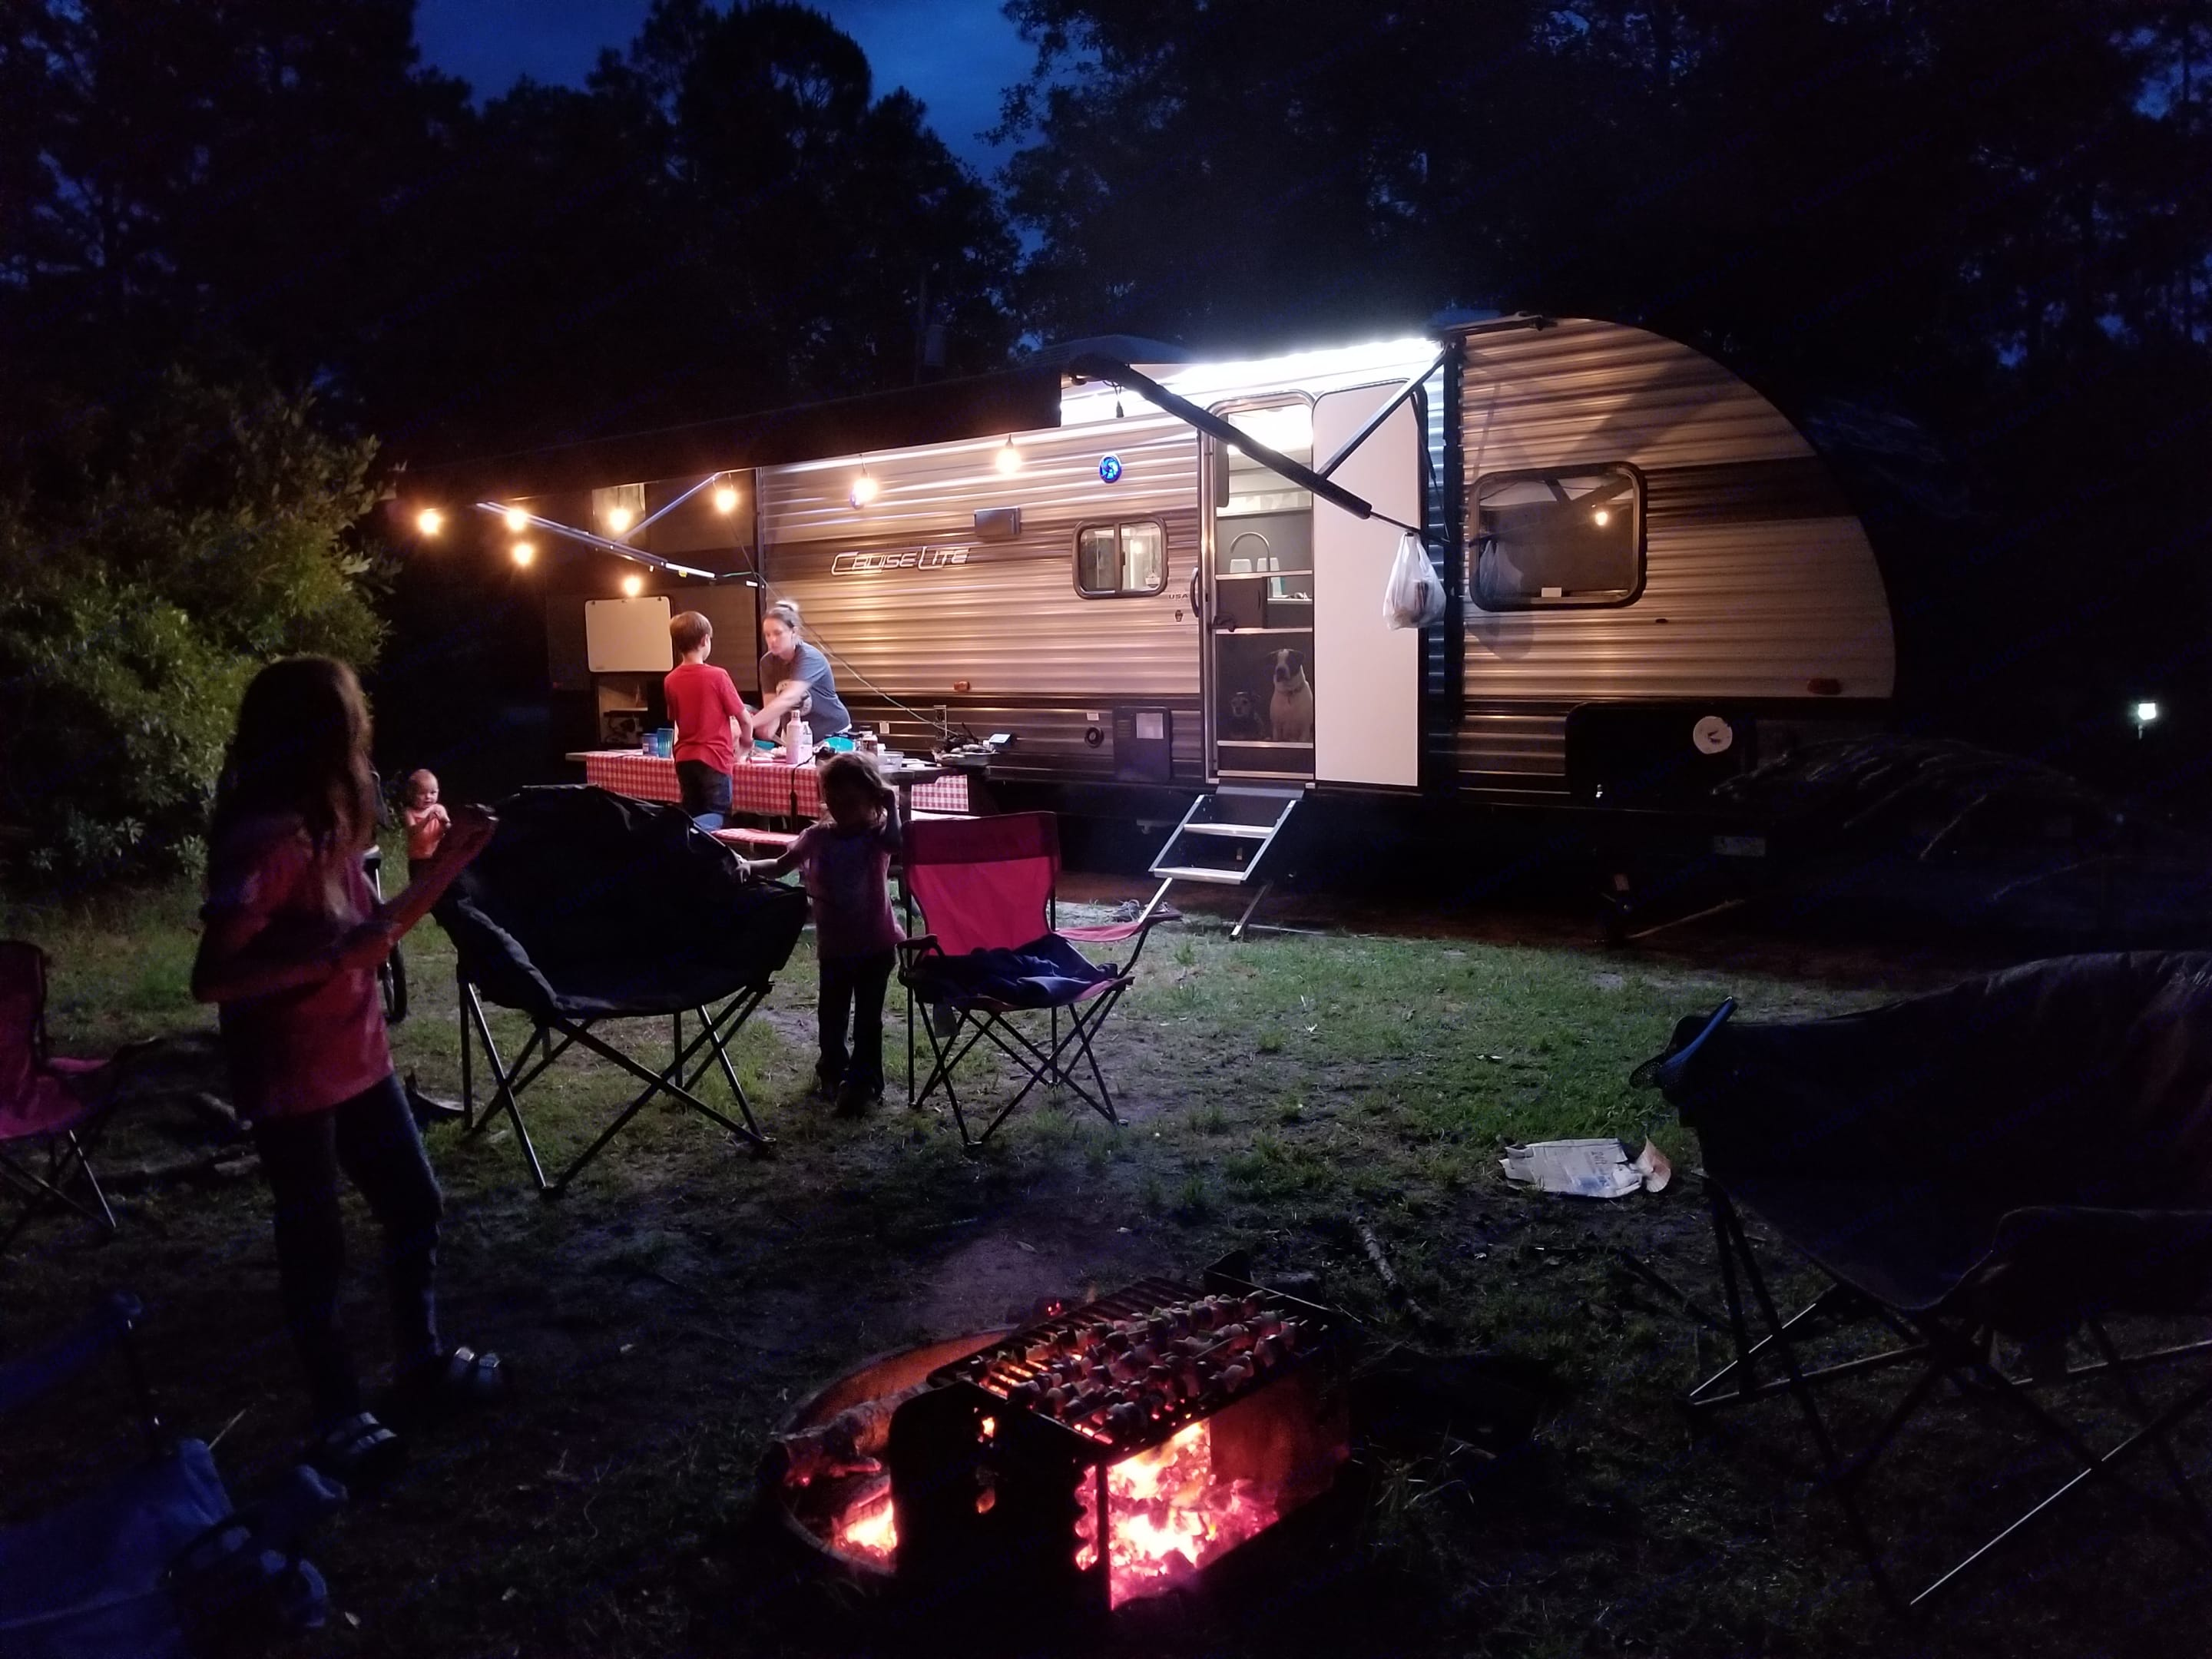 Set up and camping on it's maiden voyage to test it out. . Forest River Cruise Lite 2020